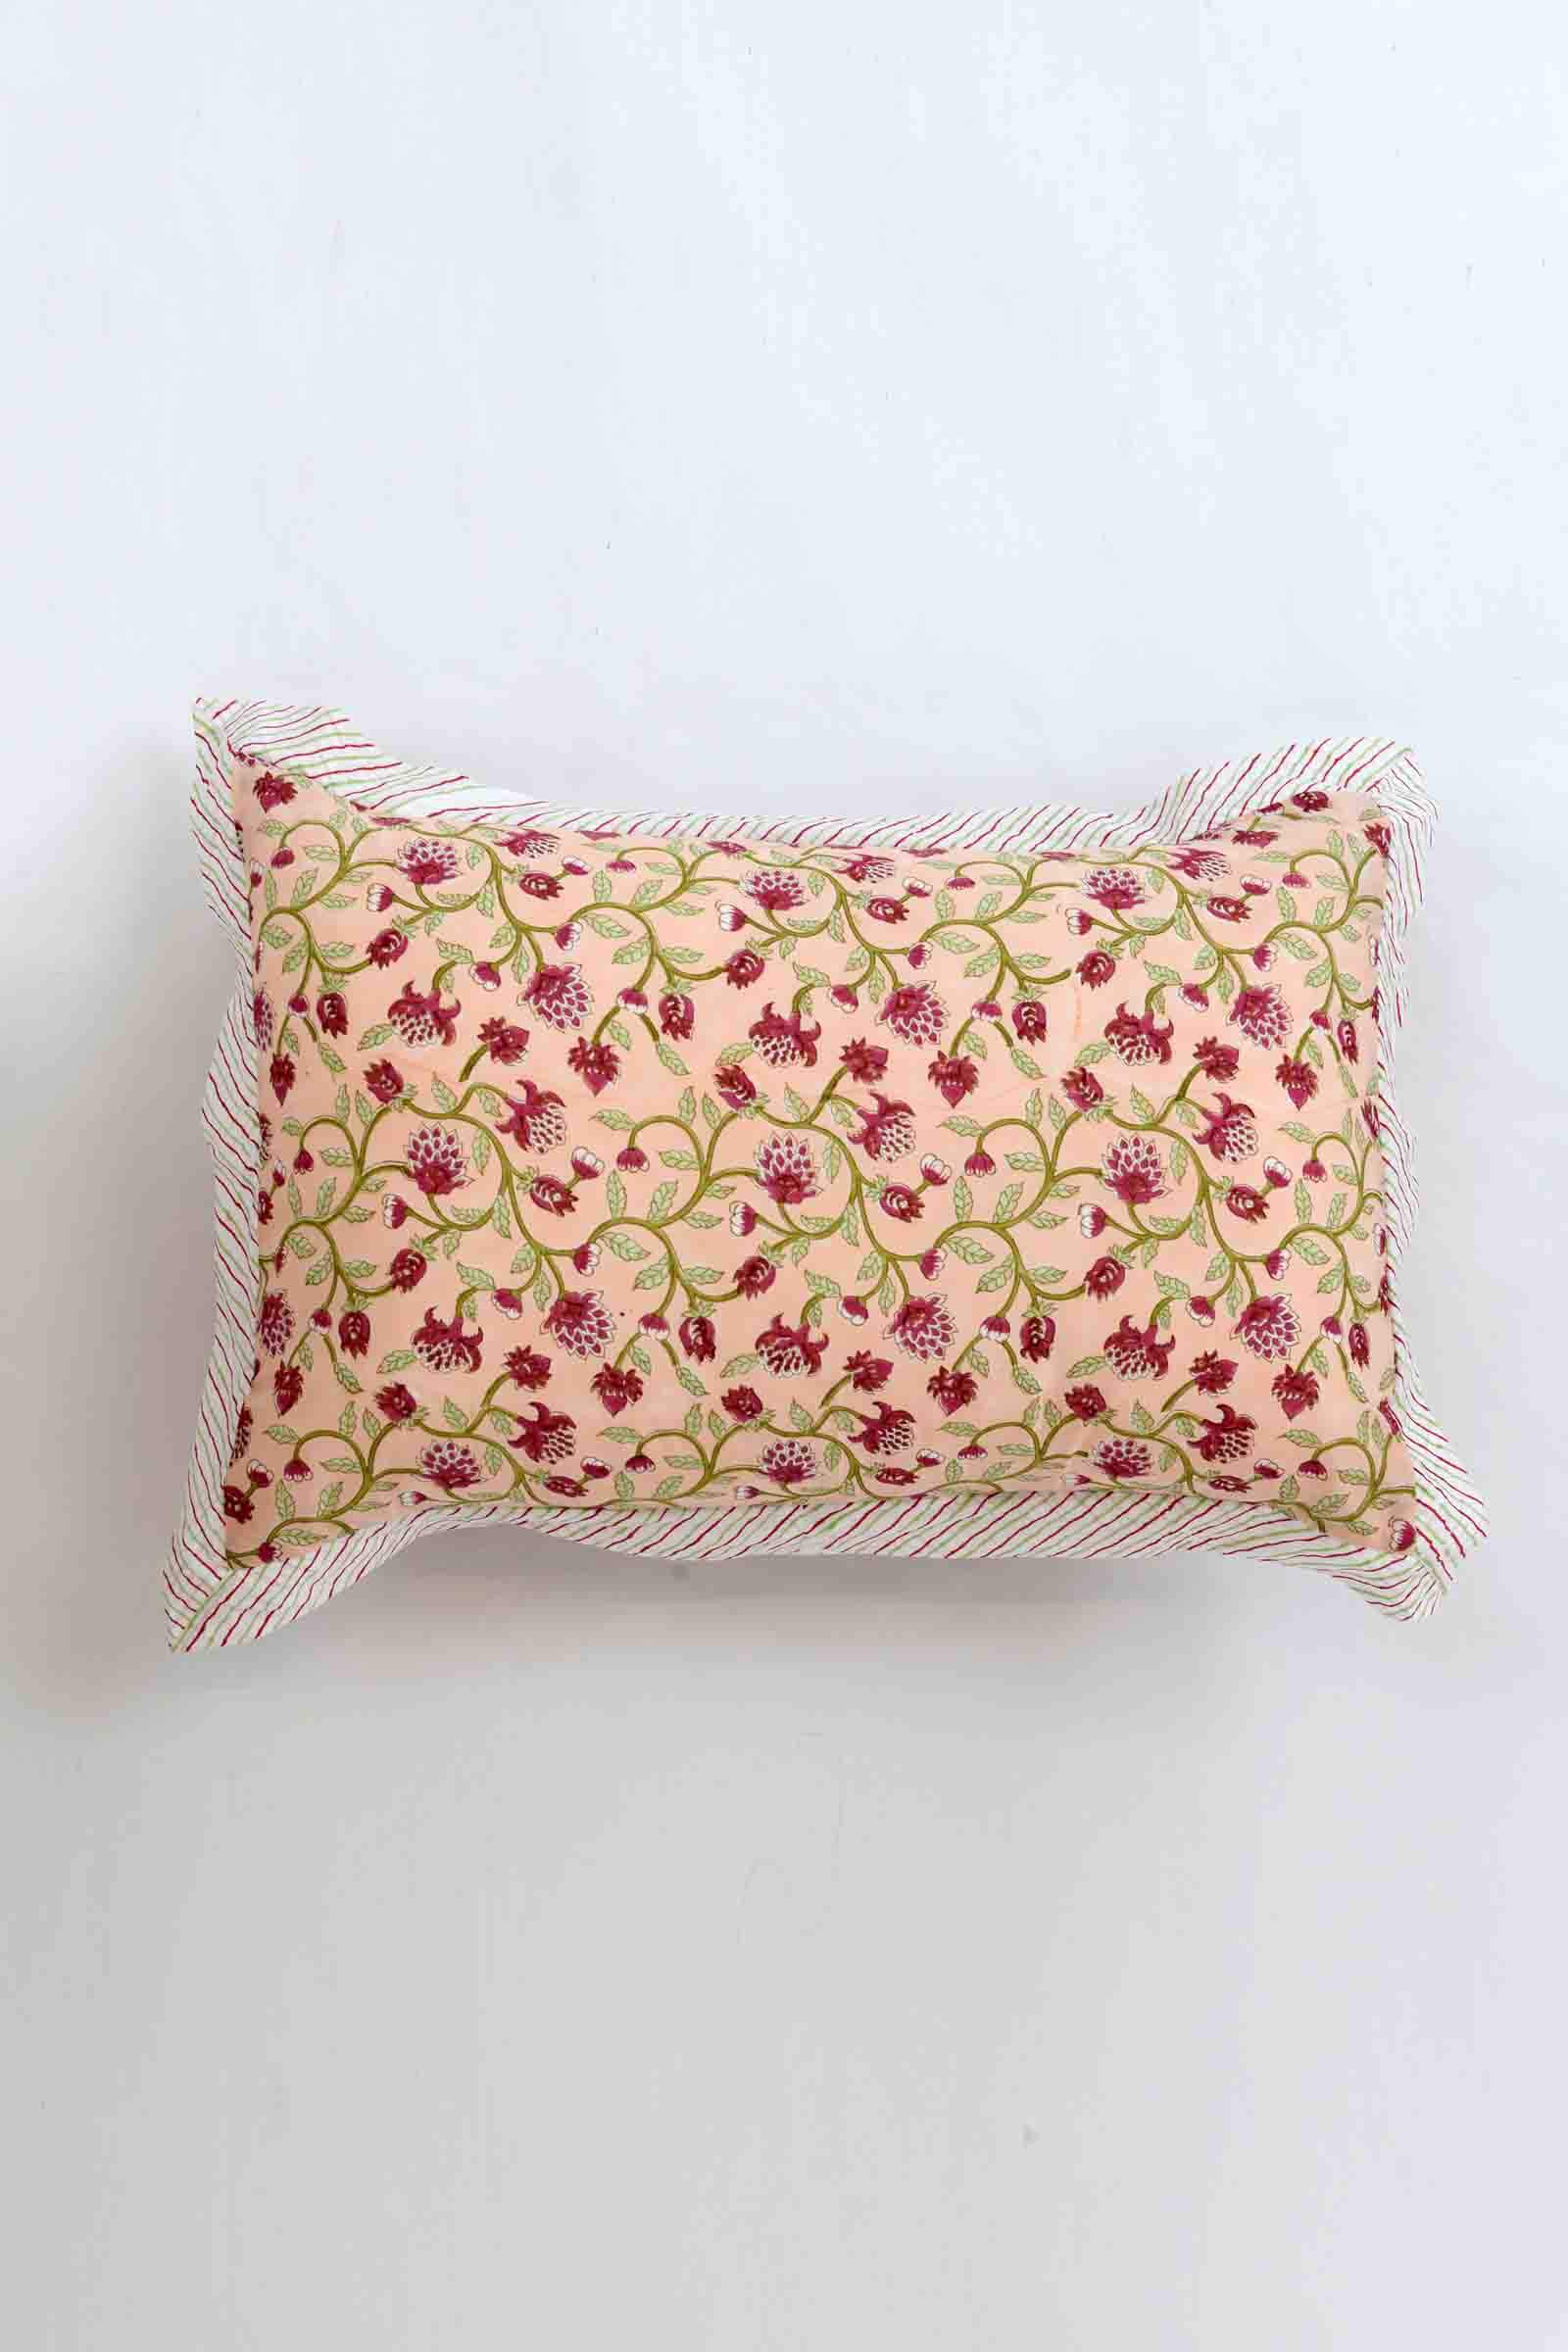 Poetic Summer Pillow Cover Set of 2